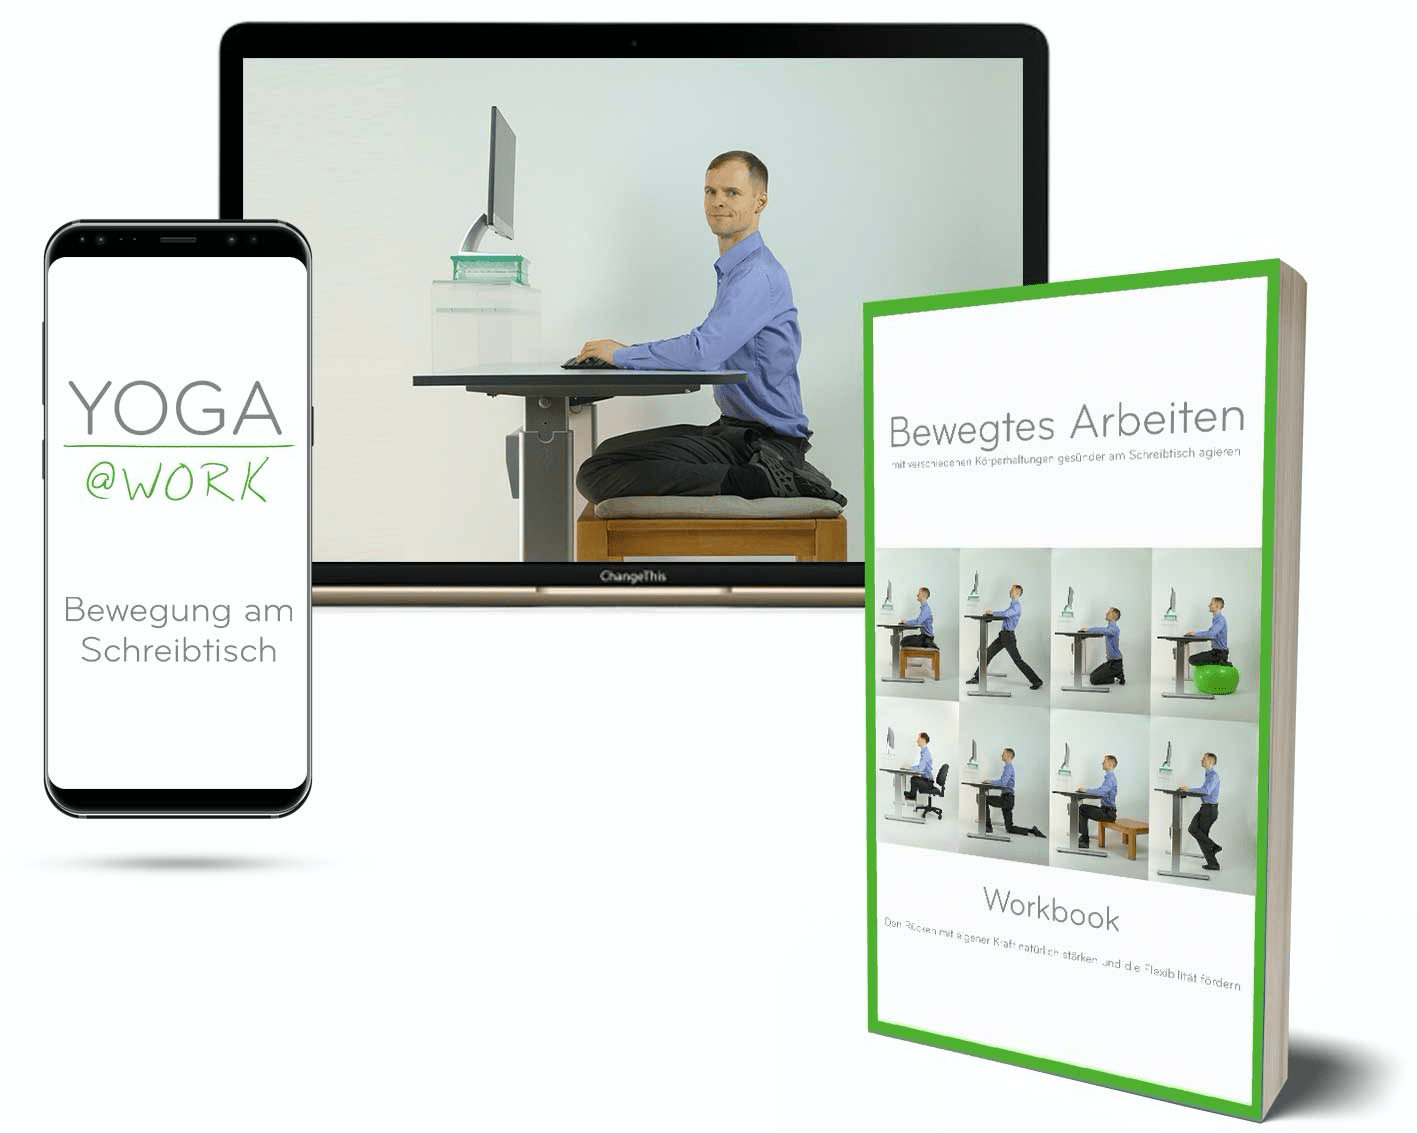 Onlinekurs Yoga at work von Mike Schumacher